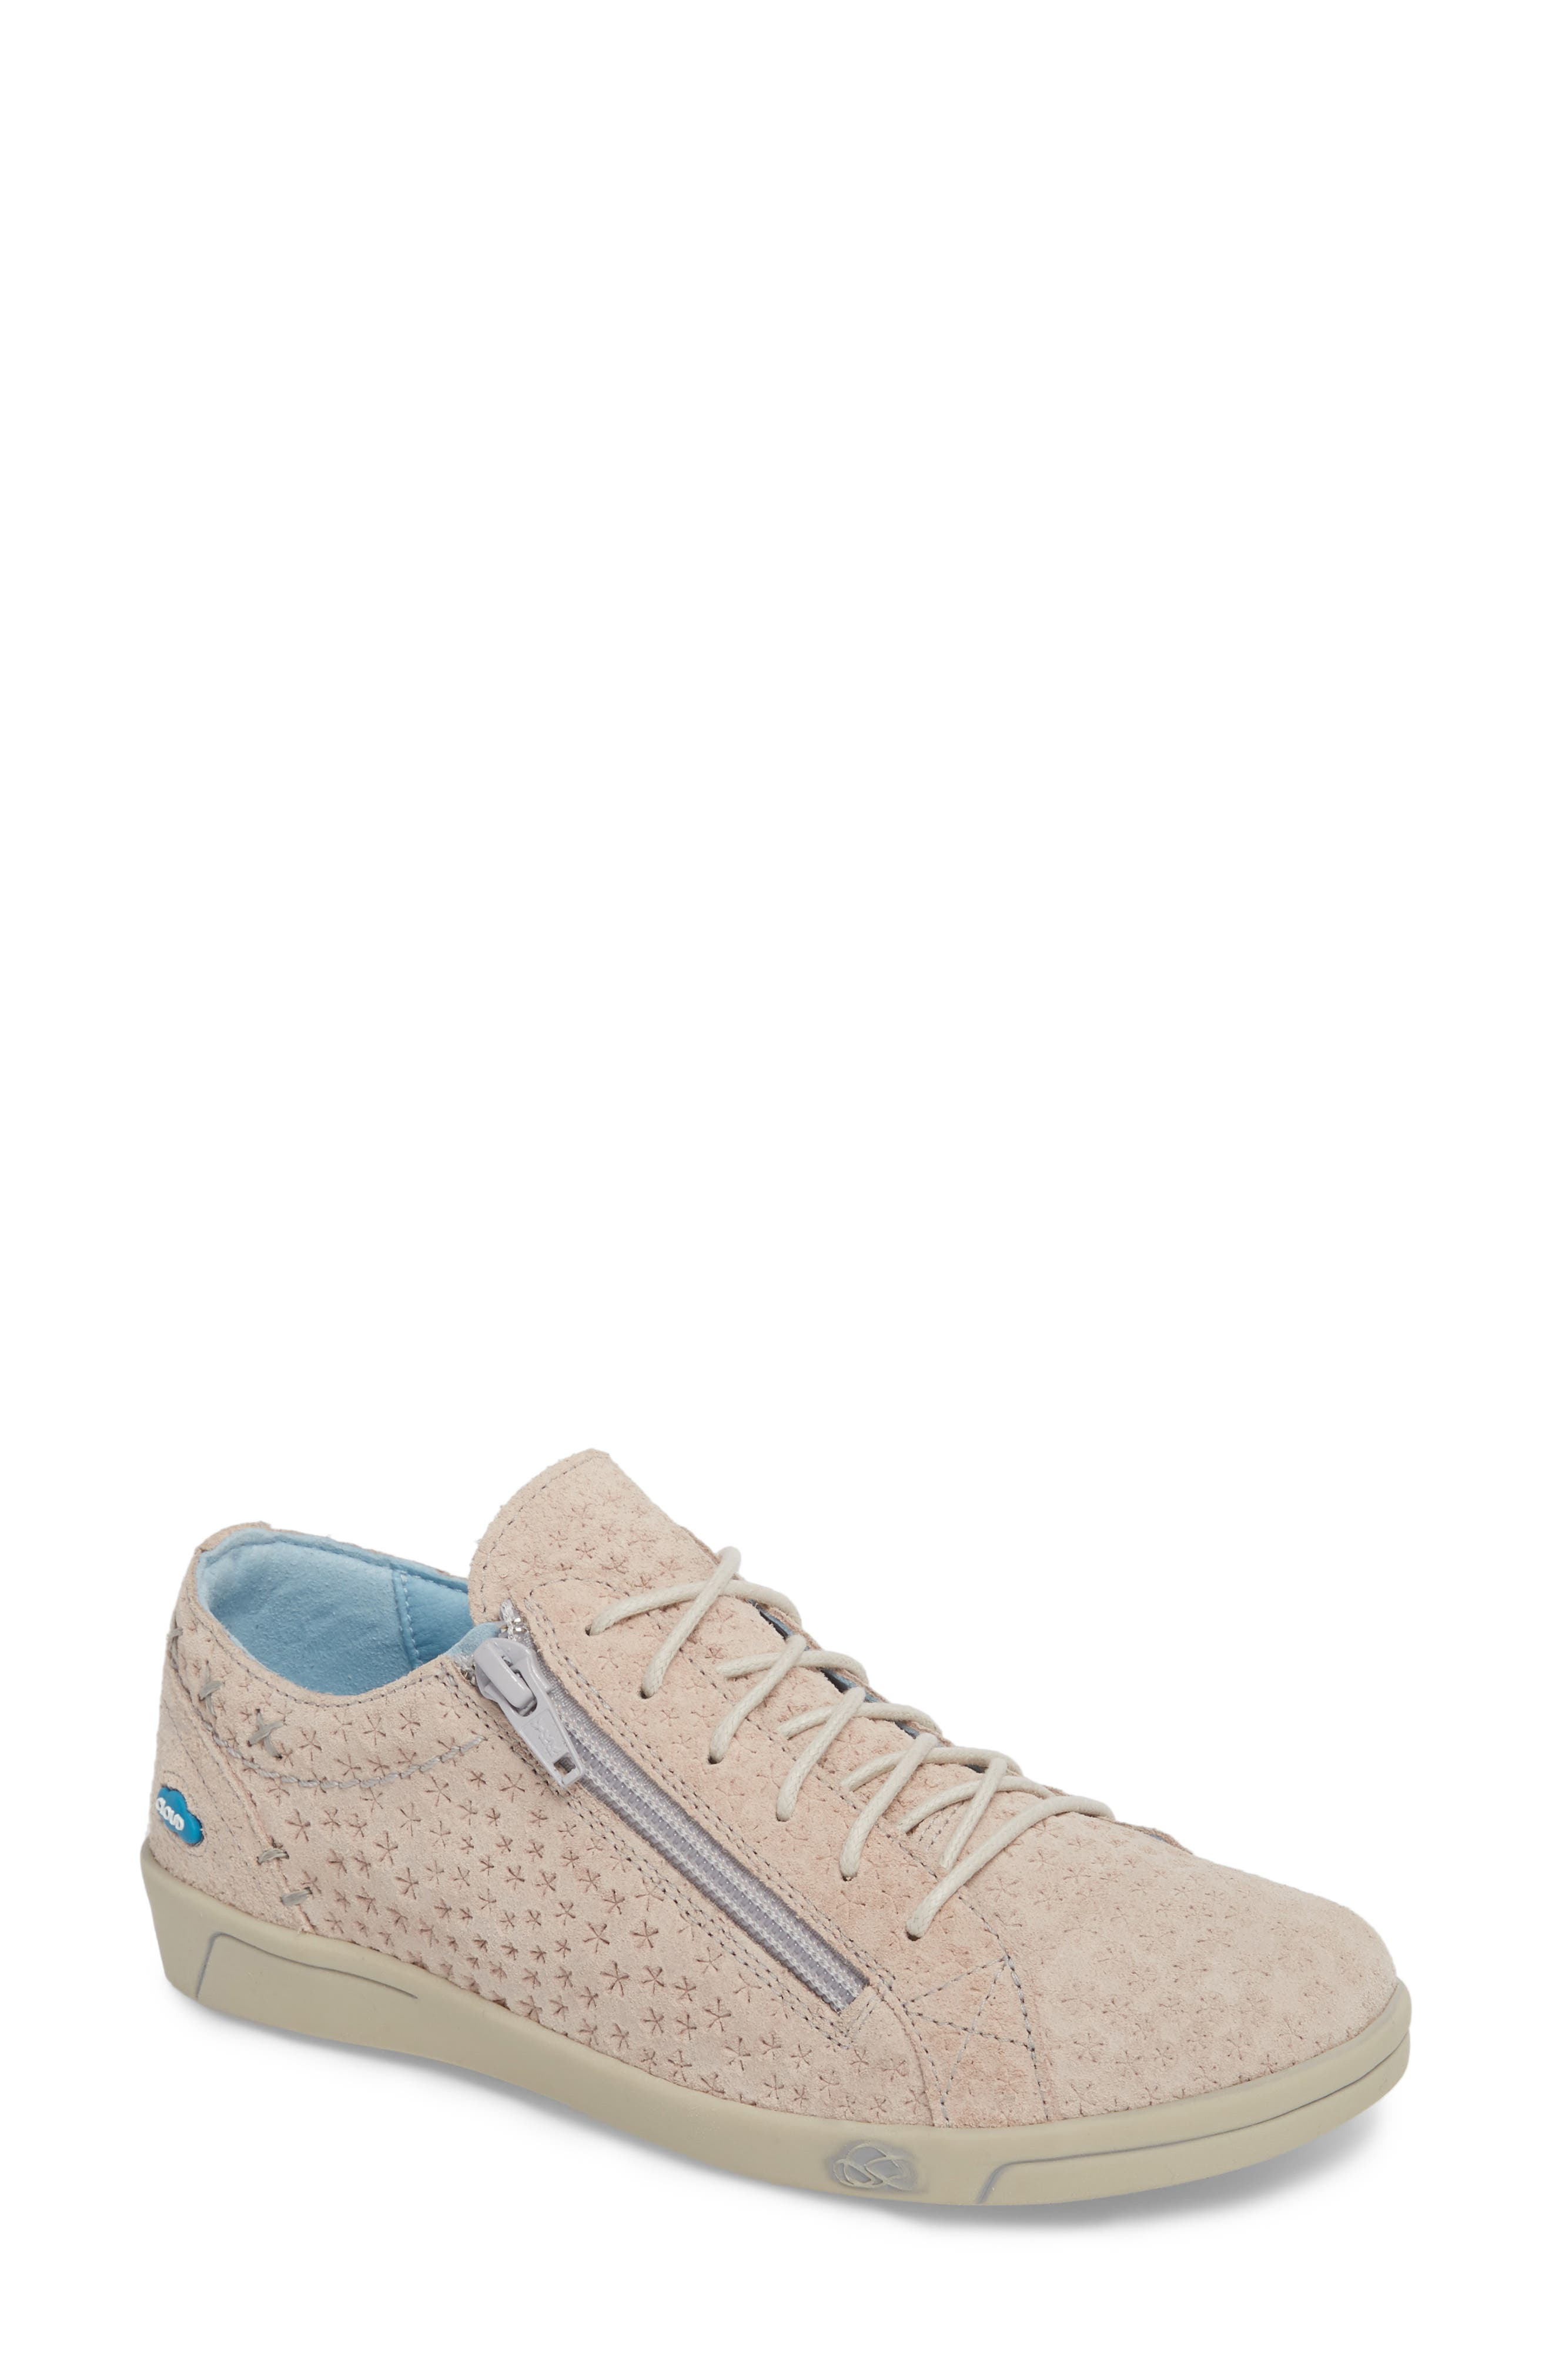 Aika Star Perforated Sneaker,                         Main,                         color, Light Pink Leather